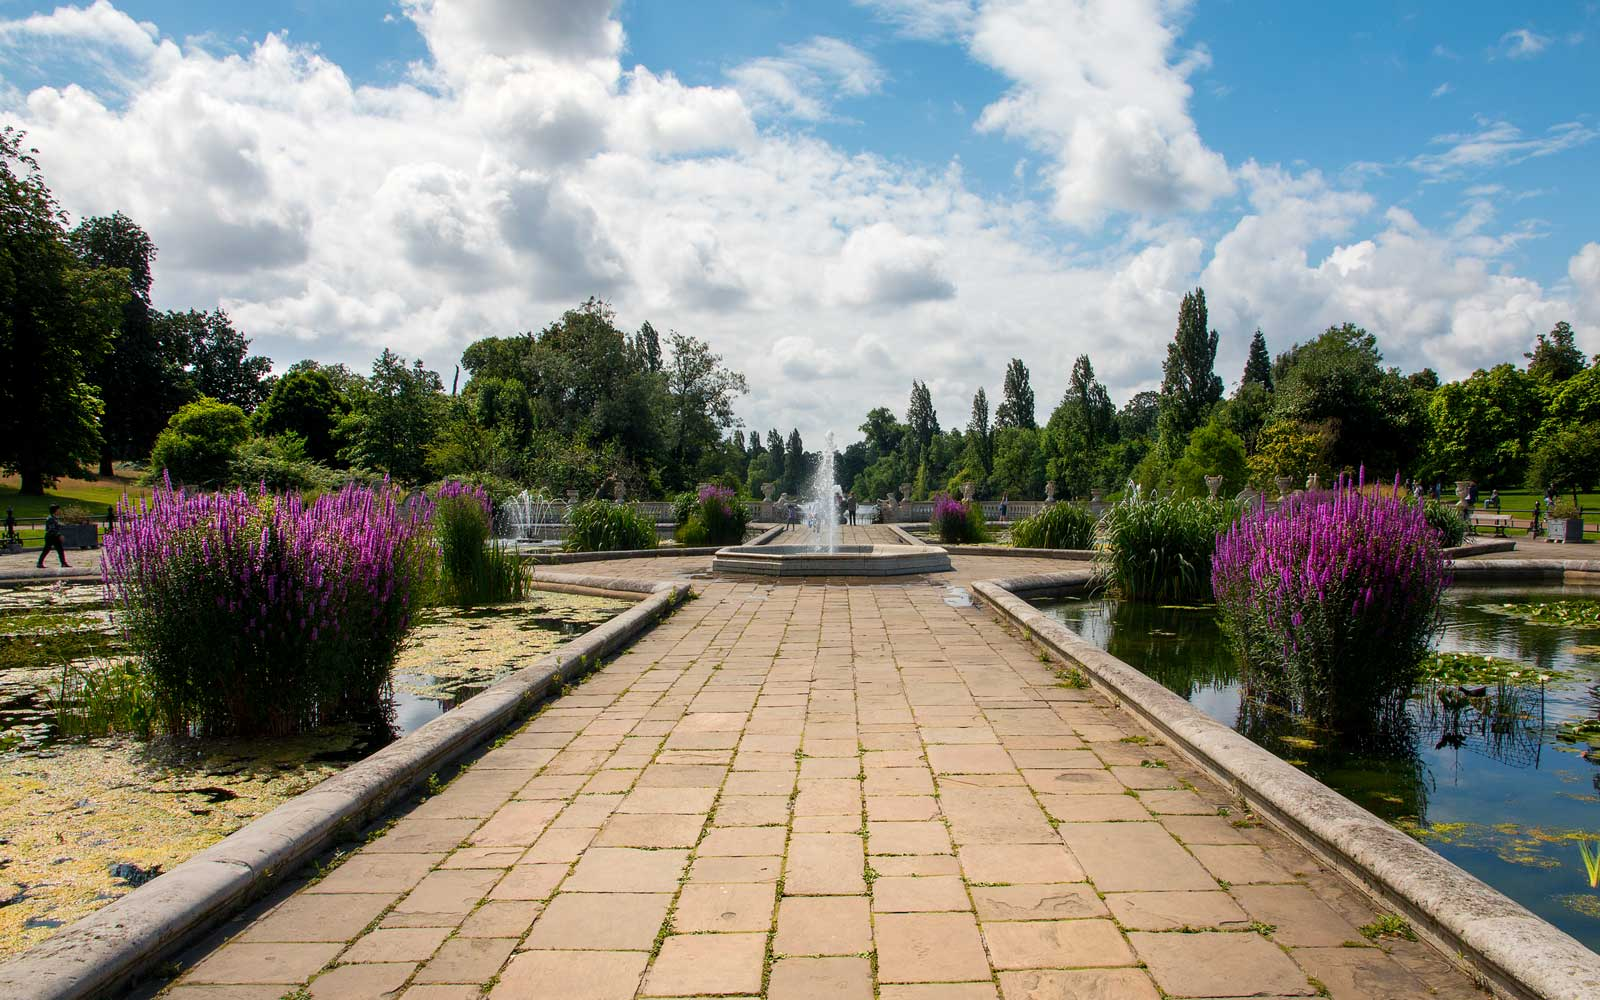 Ornamental Italian Gardens in Kensington Gardens, London, United Kingdom